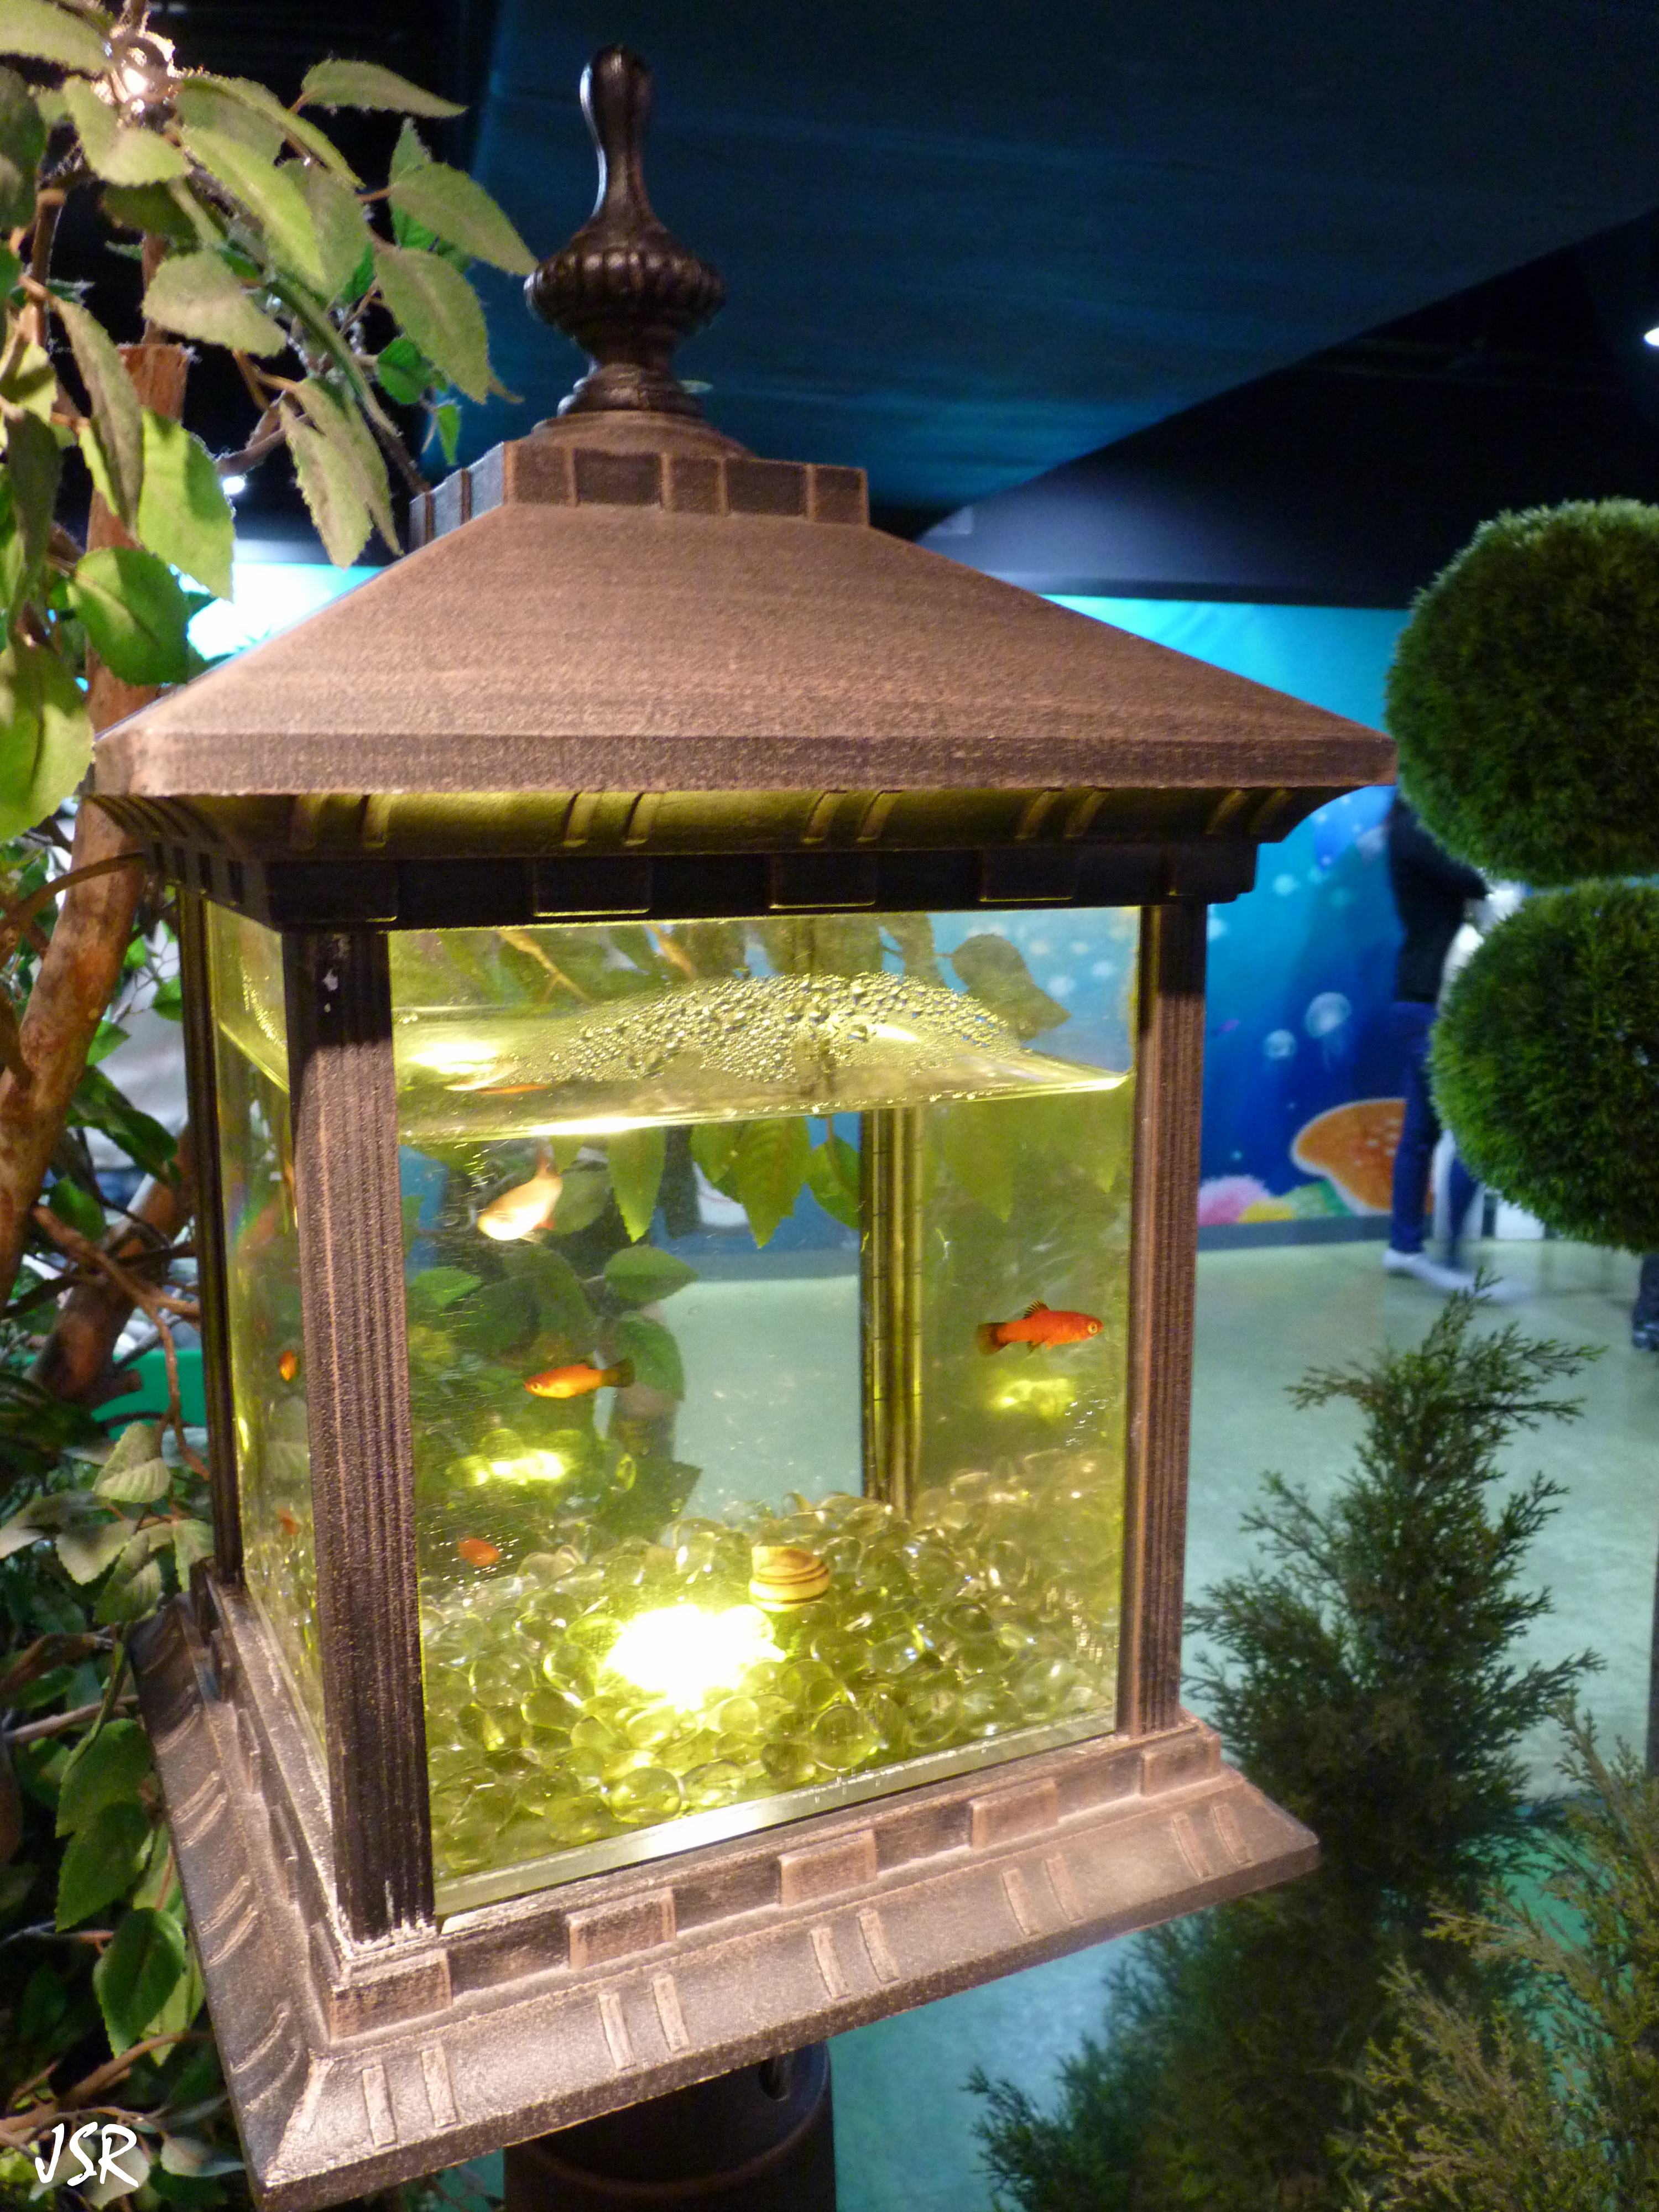 Fish tank toilet - The Paths Wind Around Showing The Visitors The Aquarium S Residents And Not All Of Them Are Sea Life